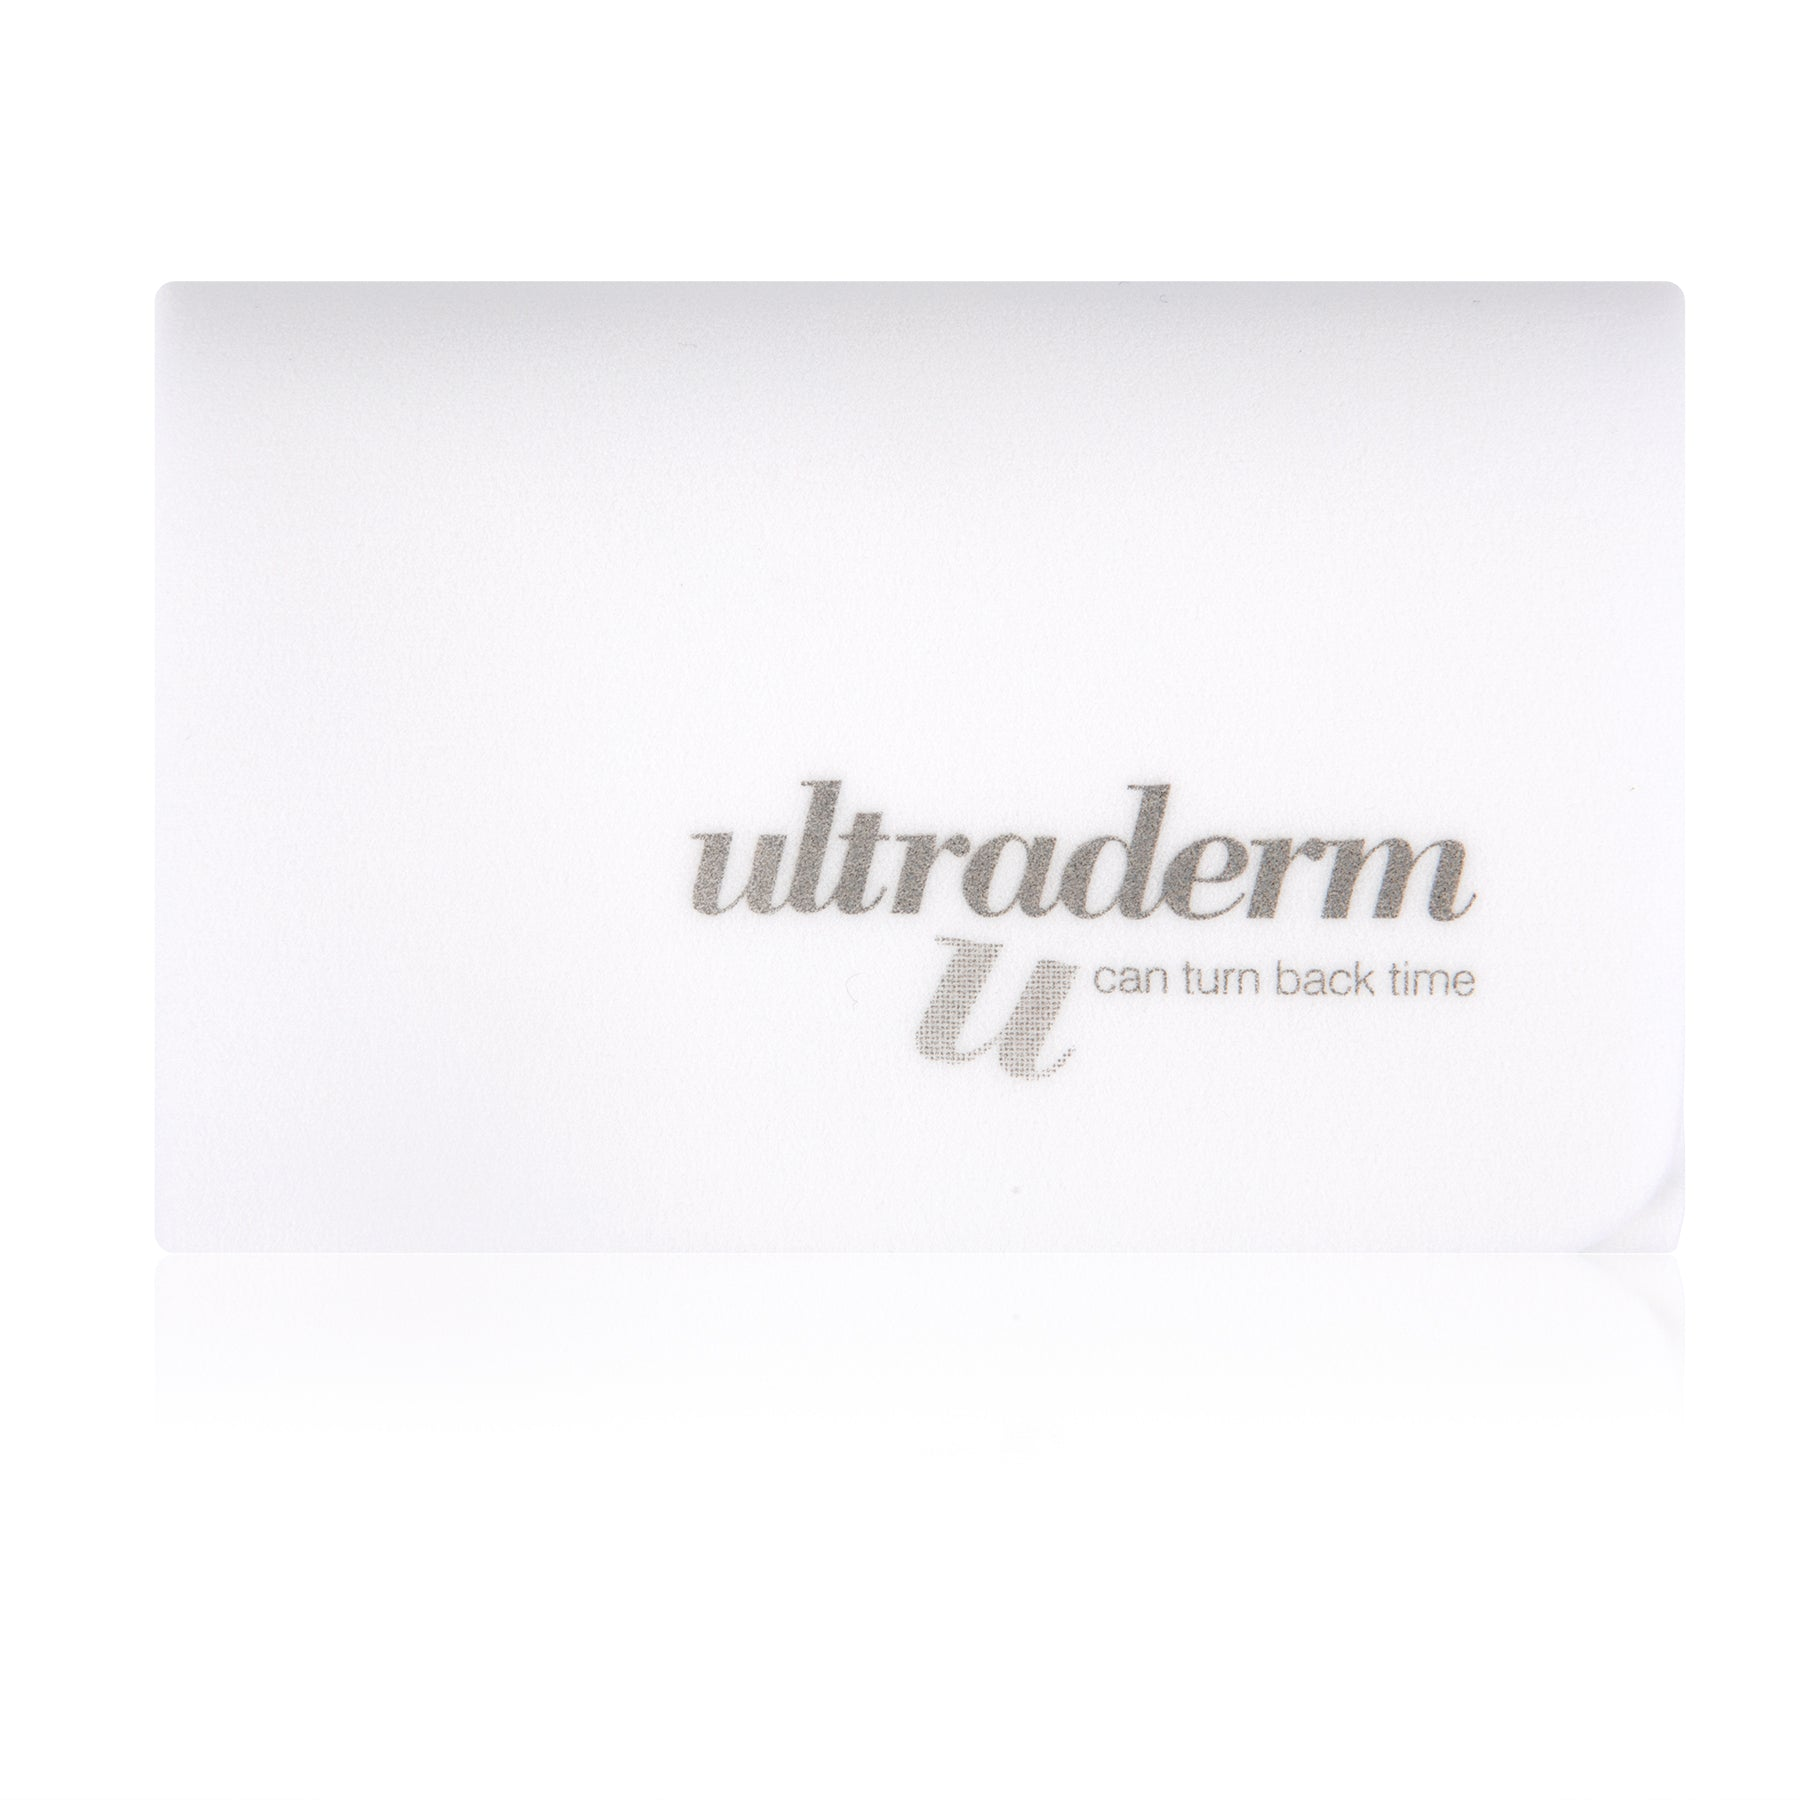 Ultraderm Silky Soft Facial Cleansing Chamois, Antibacterial Cleansing Towel